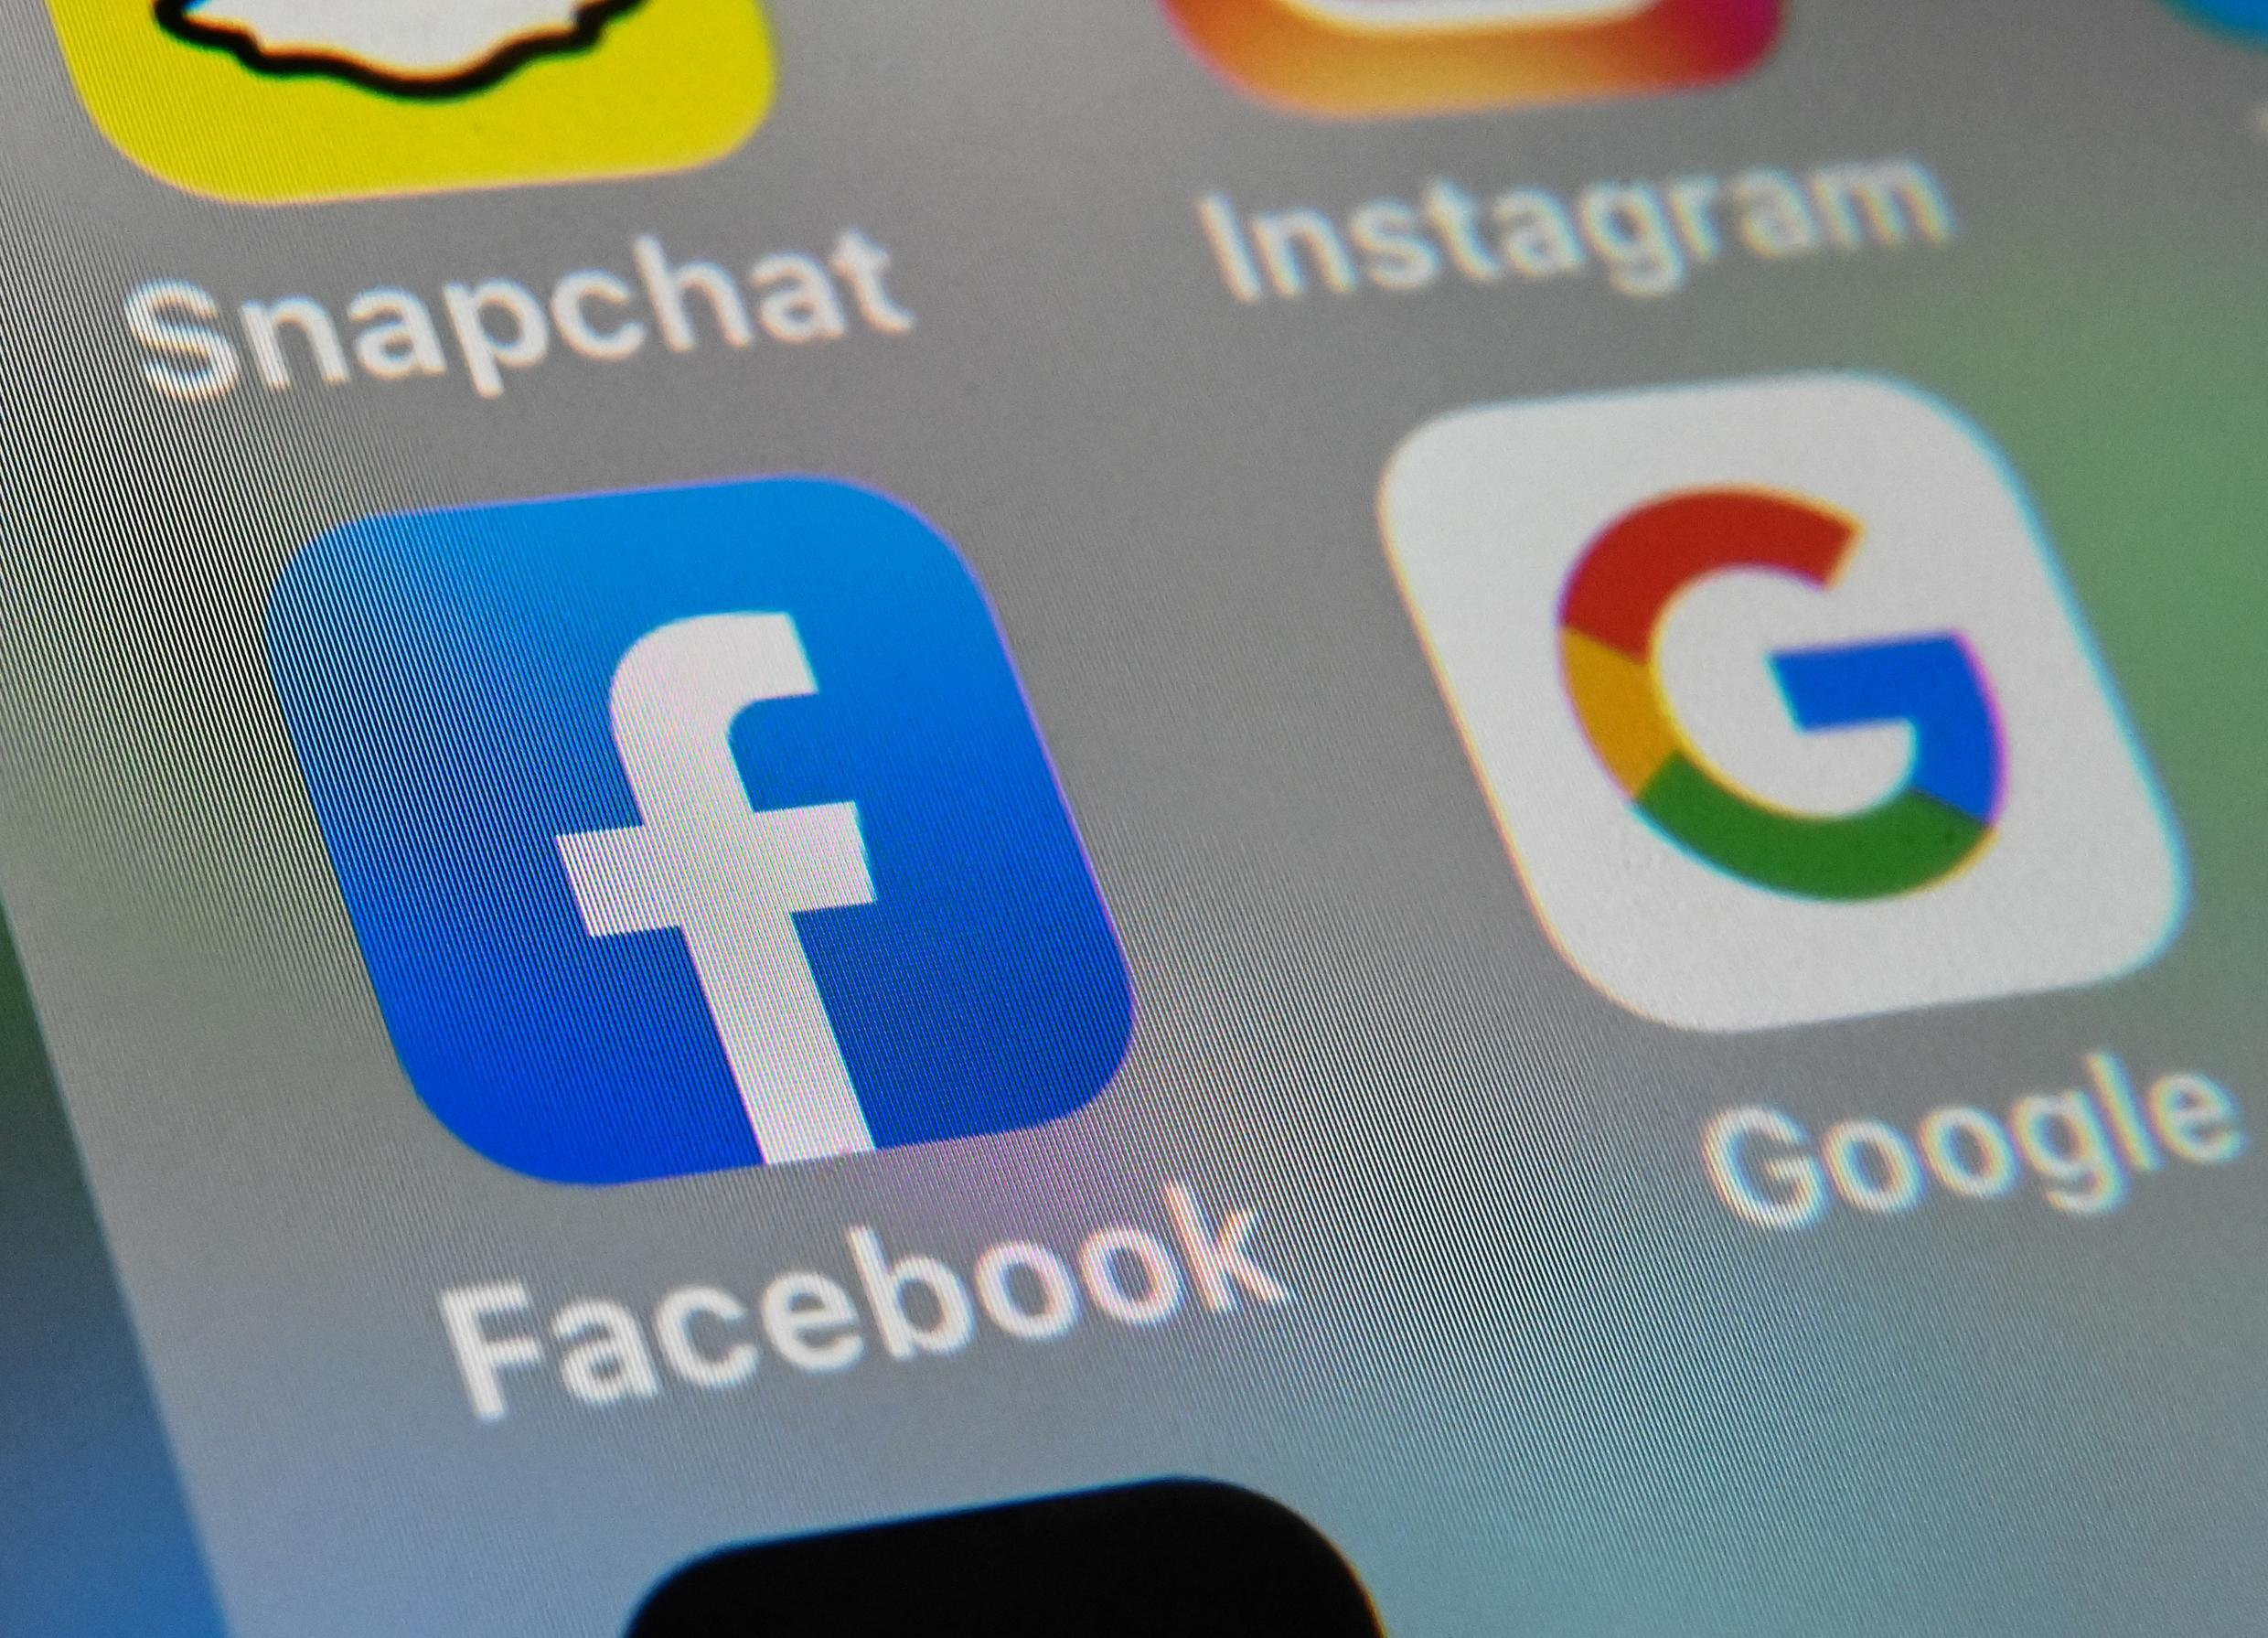 Australia last month announced plans to force Google, Facebook, and other internet firms to share advertising revenues earned from news content featured by their search engines